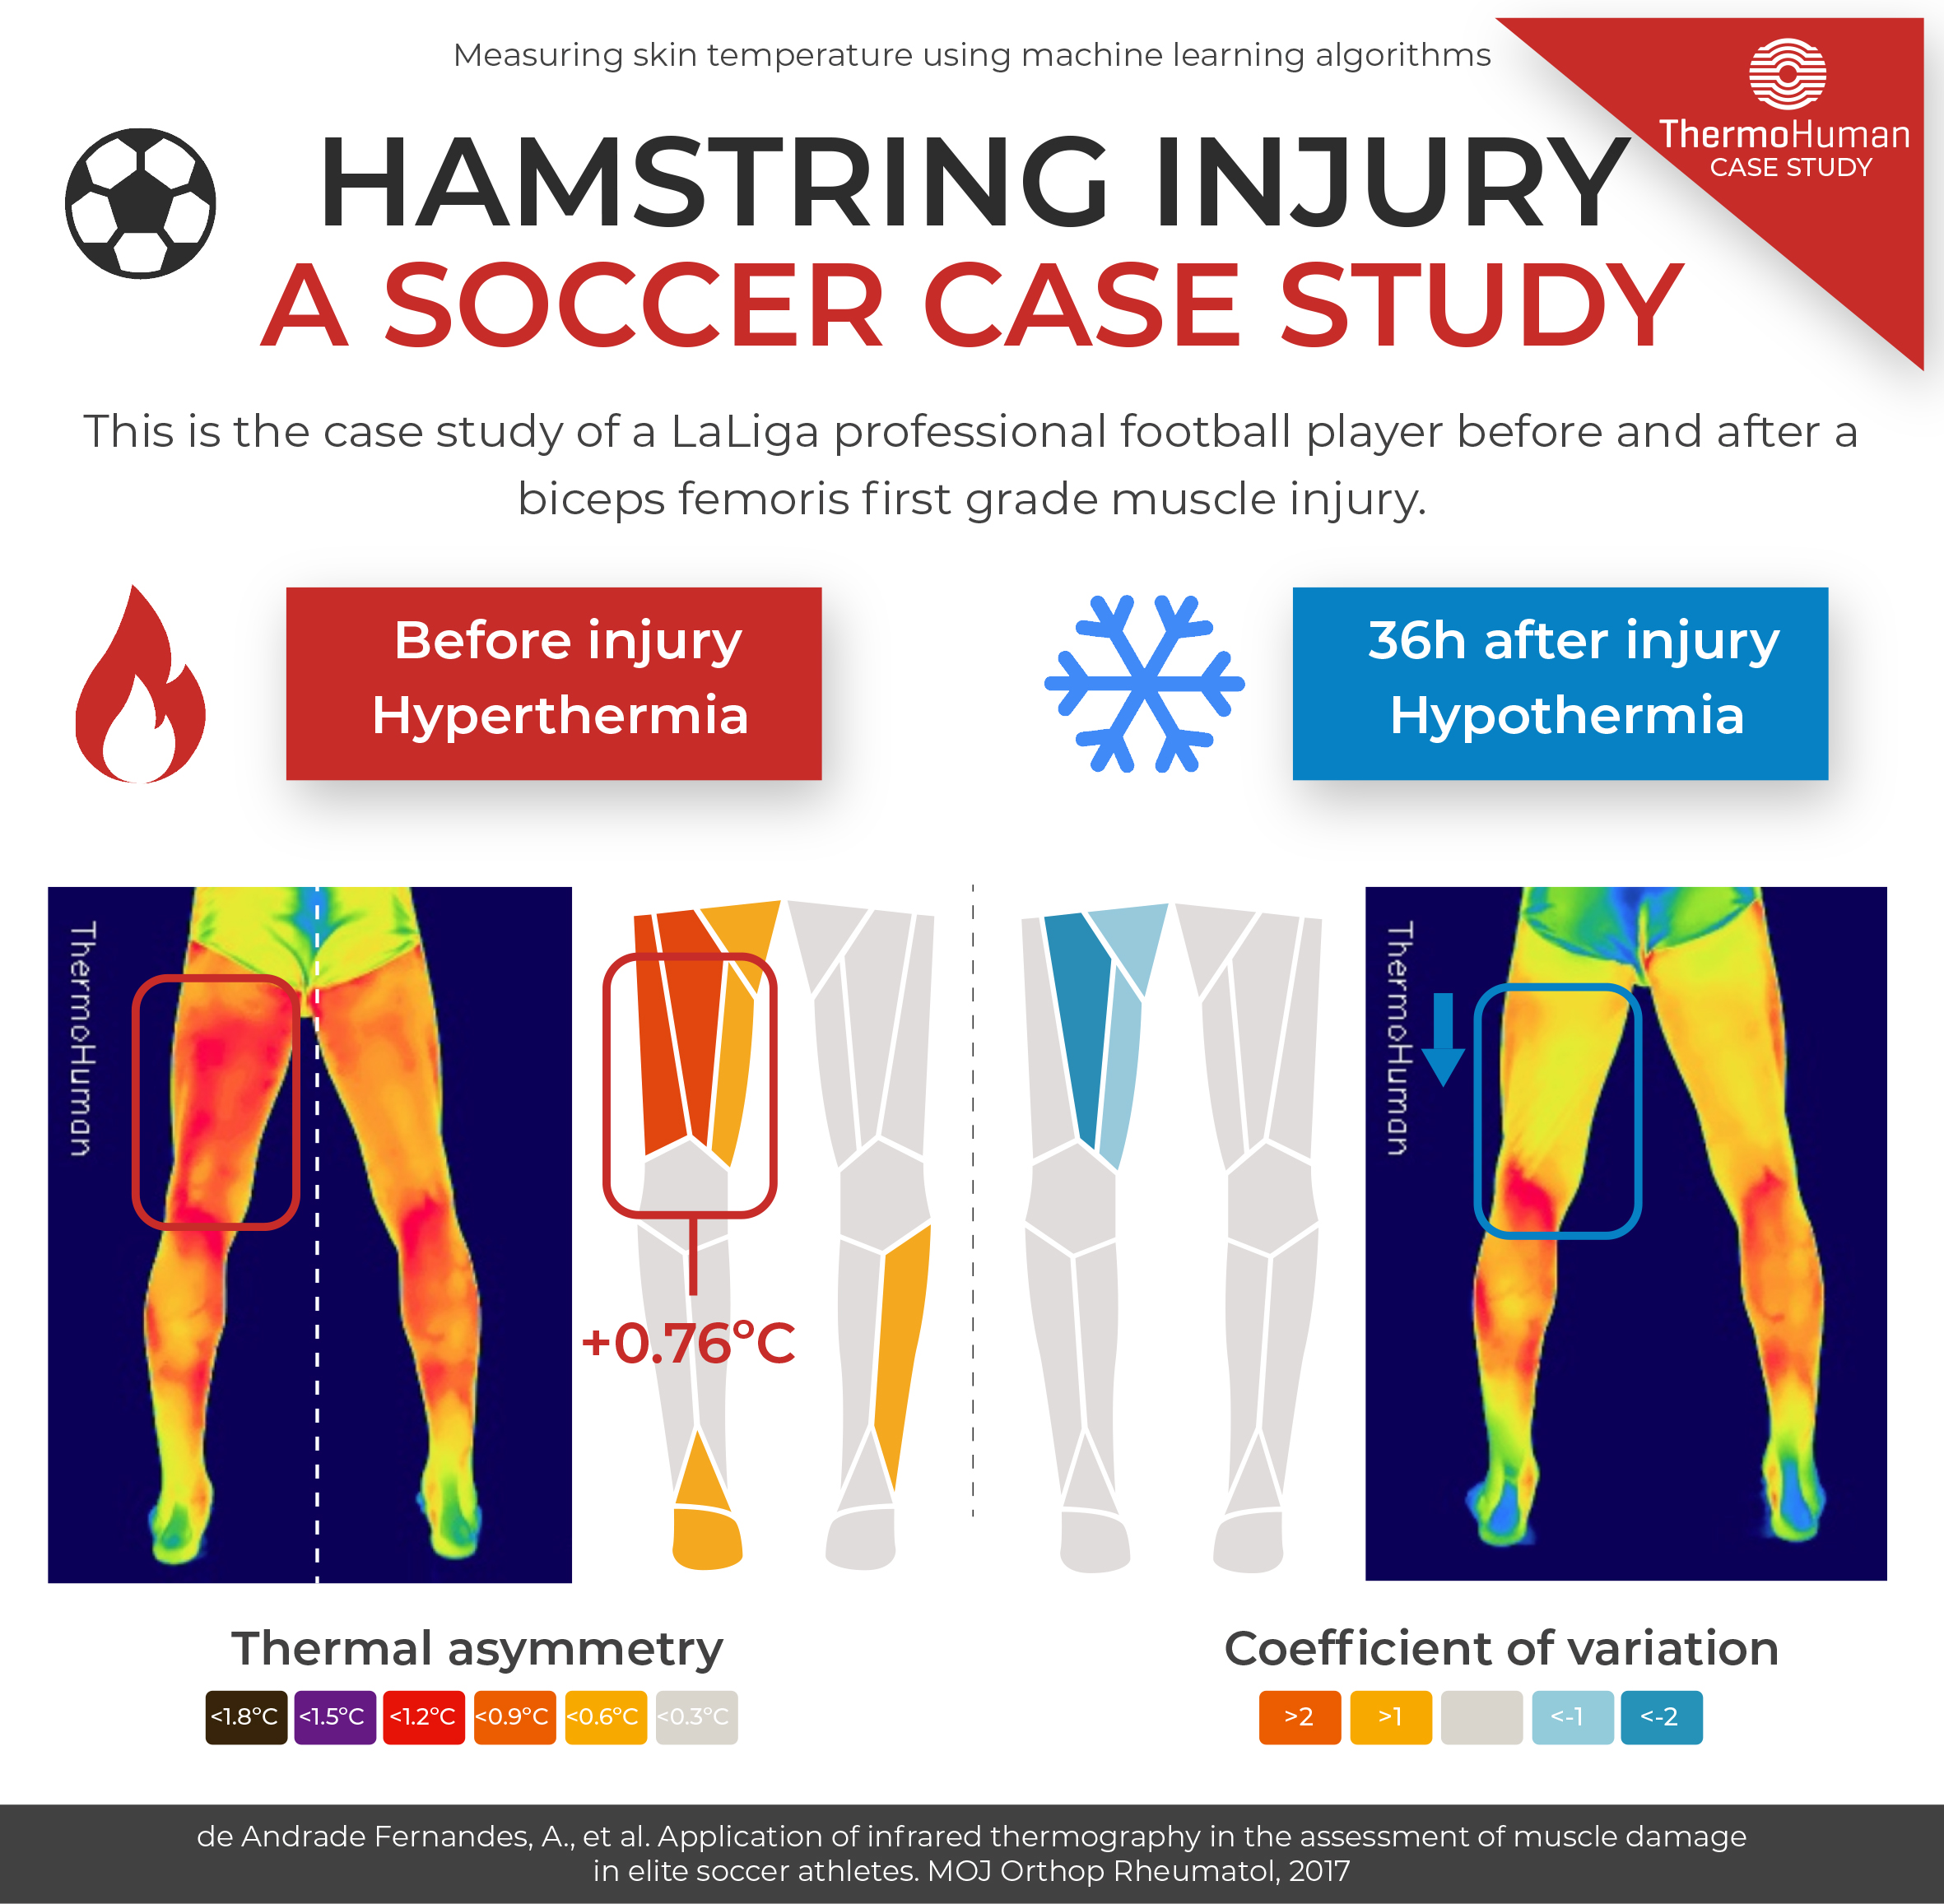 Hamstring injury: a soccer case study